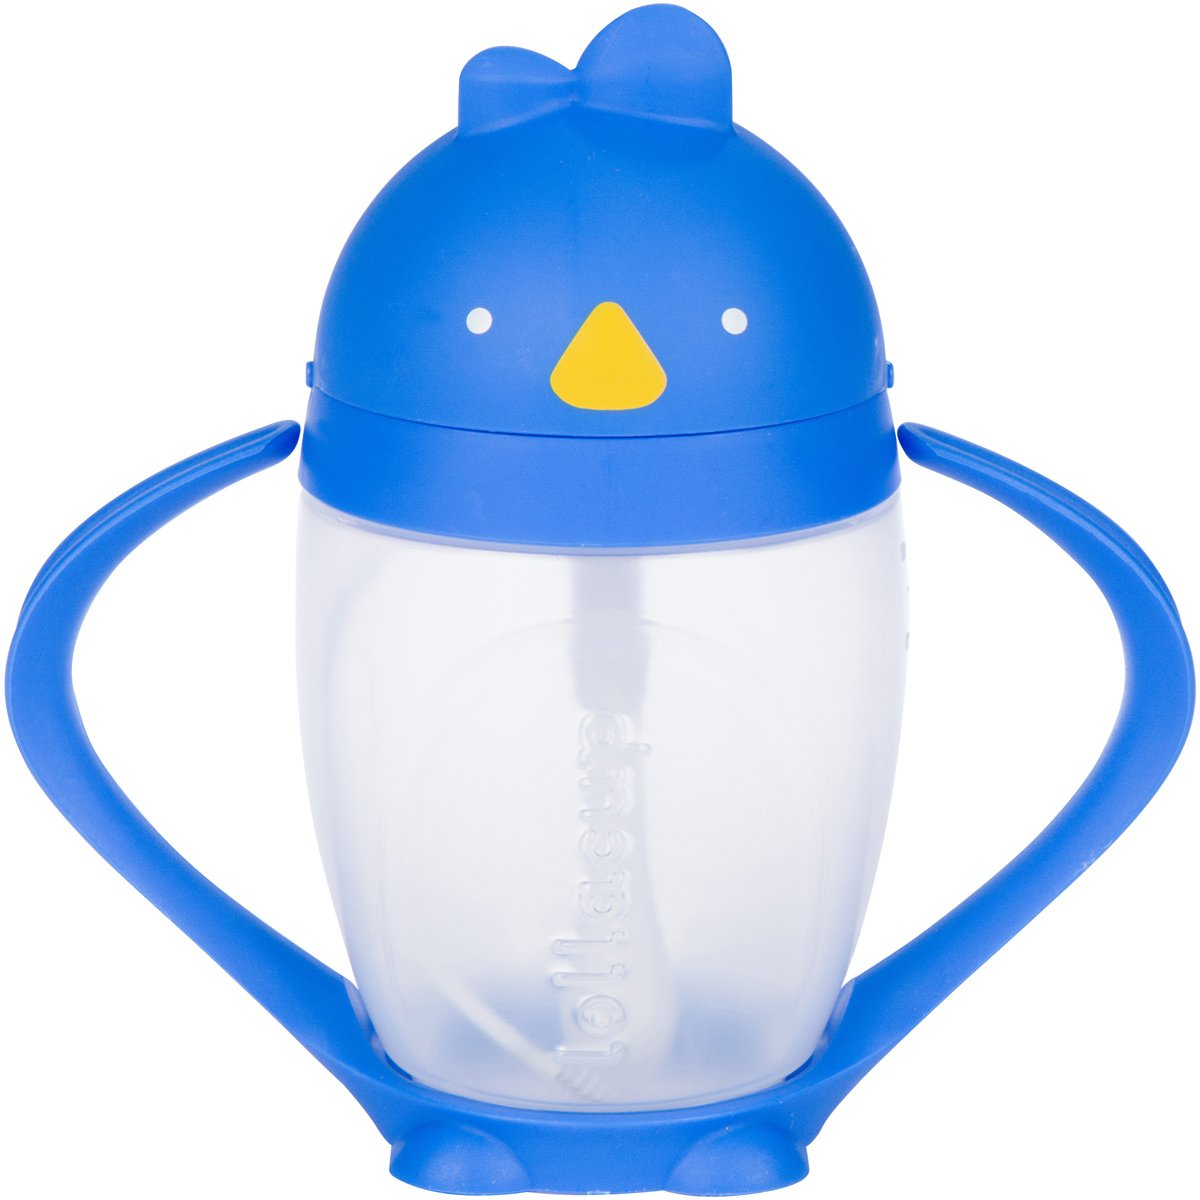 Lollaland Lollacup (Blue) | 10 oz Sippy Cup with Weighted Straw - Made in USA - Includes Straw-Cleaning Brush - BPS/BPA/Phthalate Free - FDA Approved - Valve Free - Detachable Handle